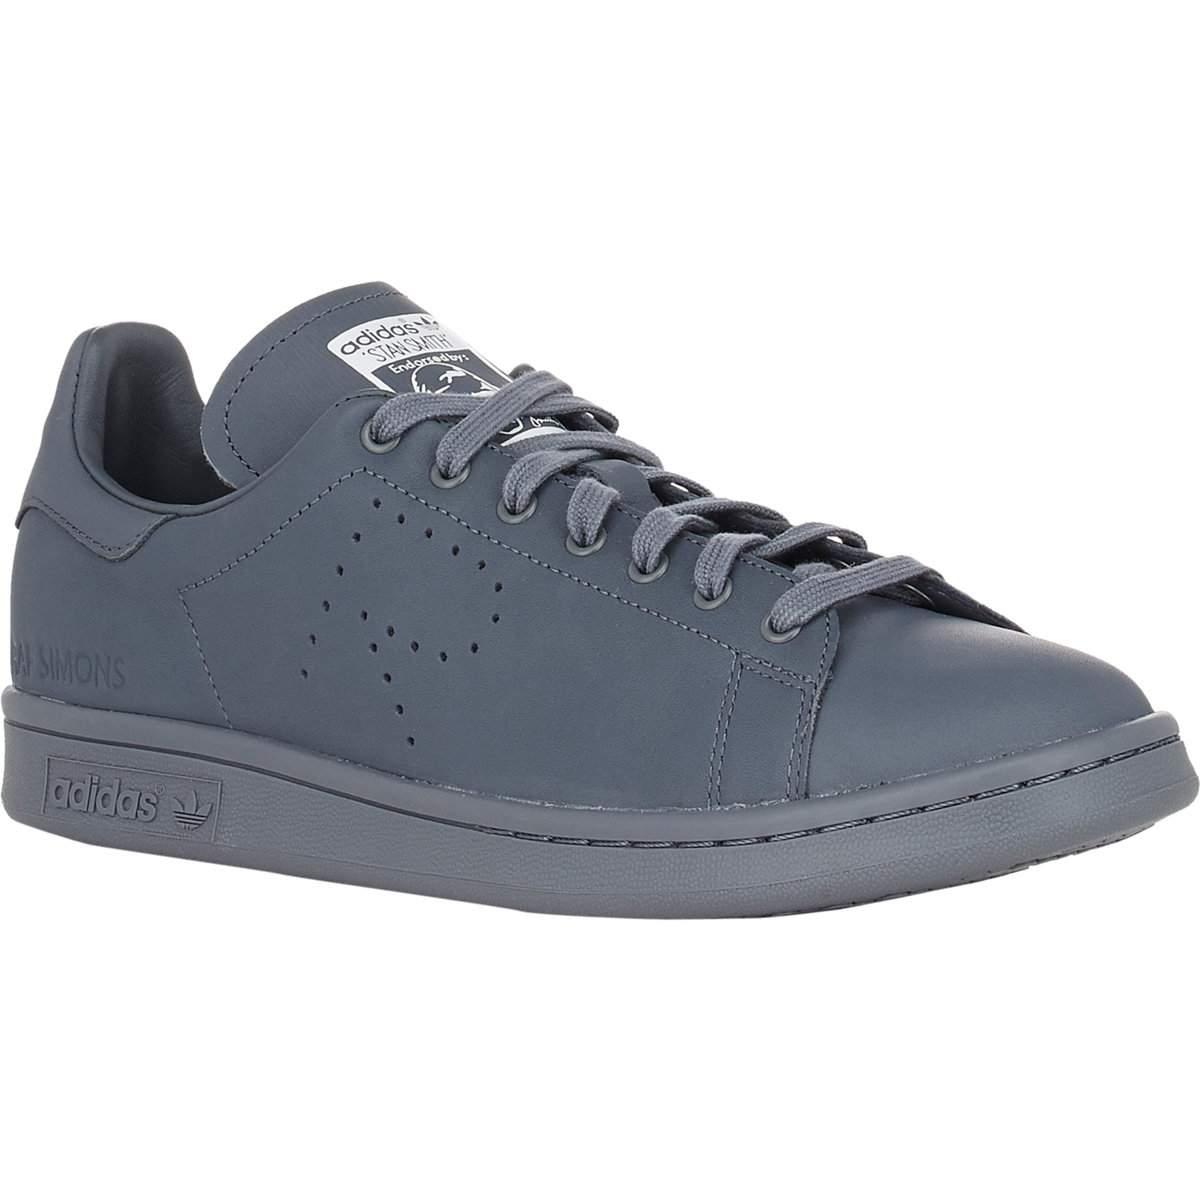 adidas by raf simons stan smith sneakers in gray for men. Black Bedroom Furniture Sets. Home Design Ideas